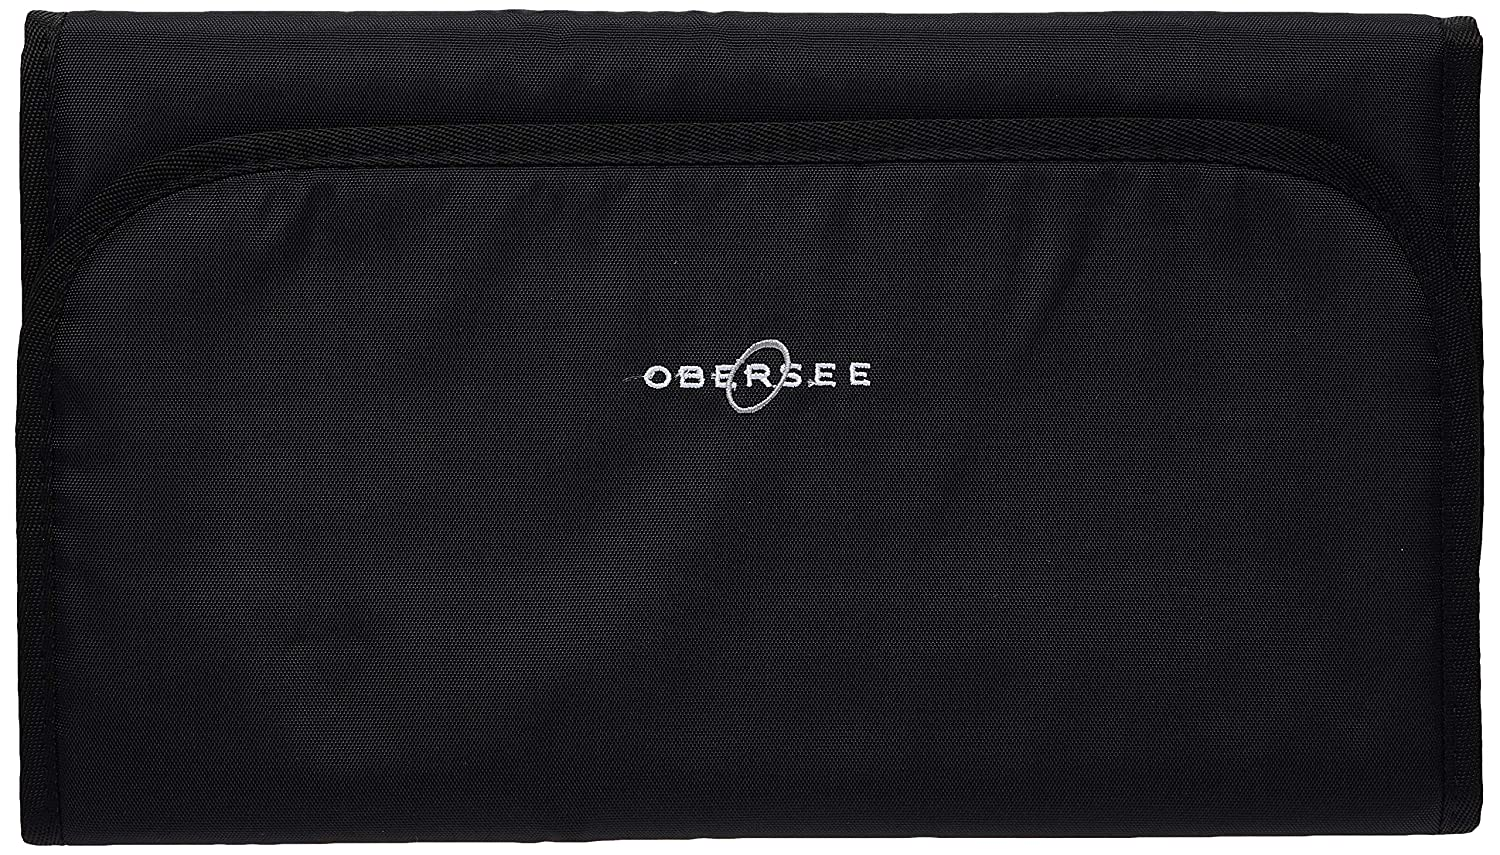 OBERSEE Baby Changing Mat in Black